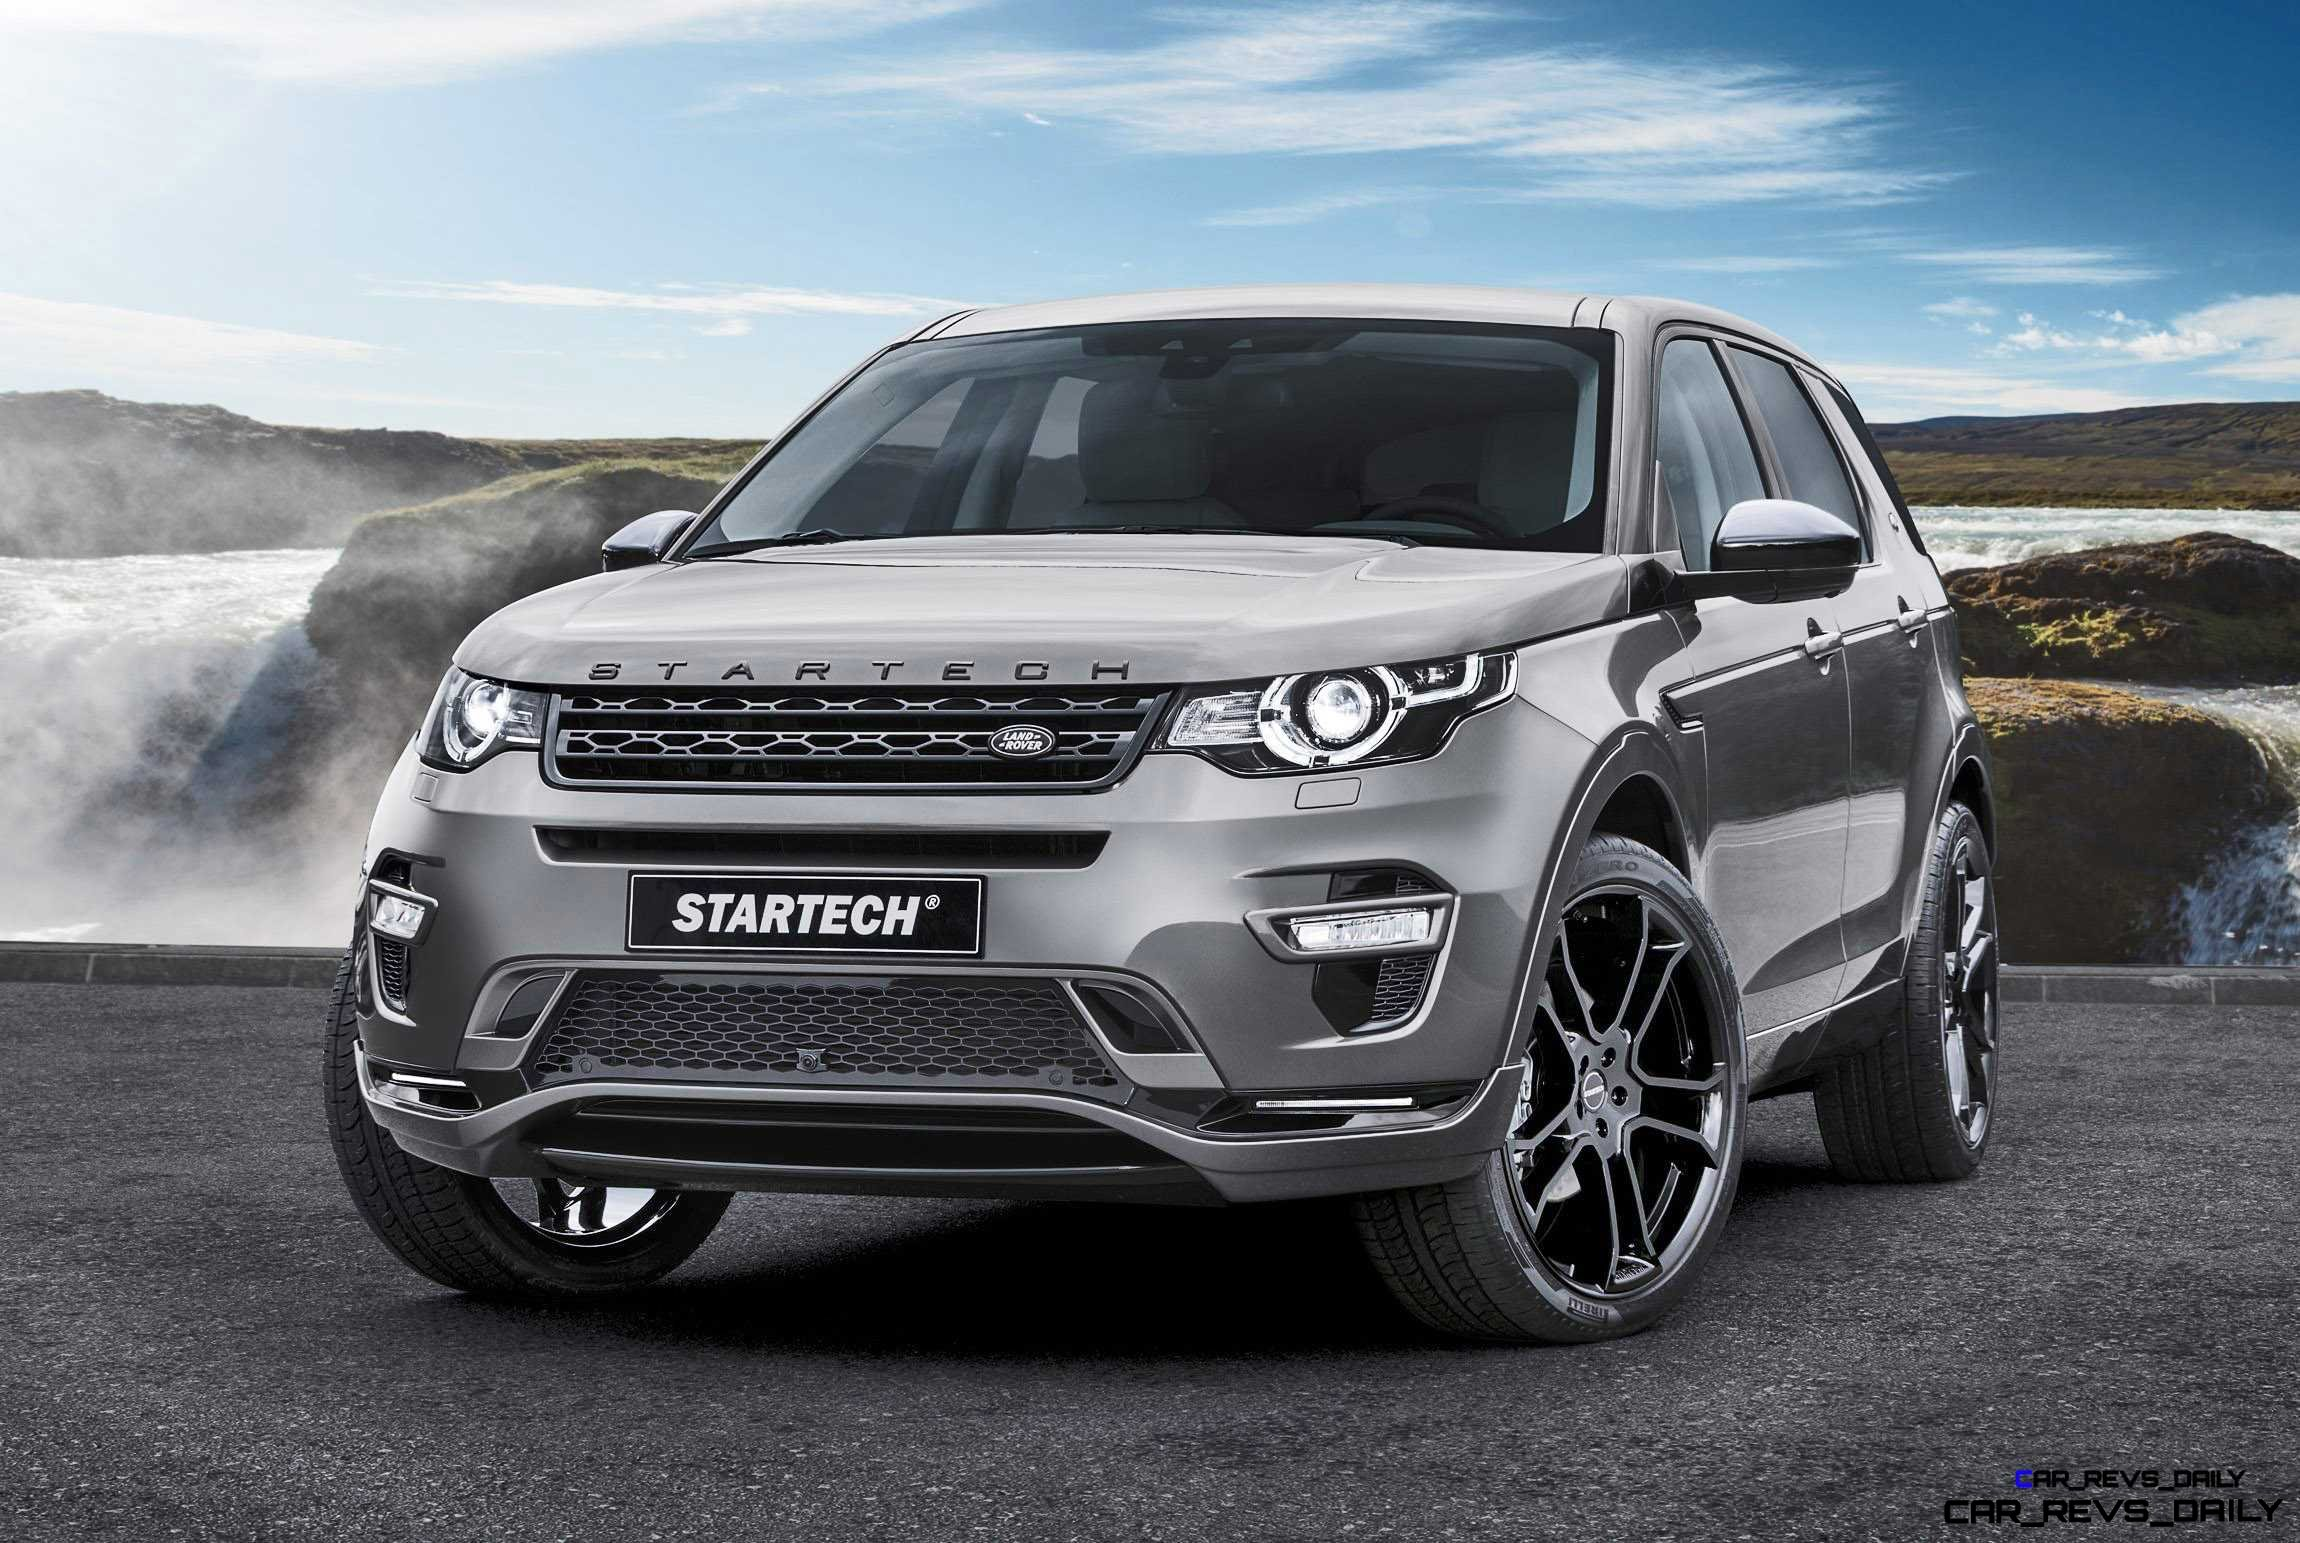 Brabus STARTECH Land Rover Discovery Sport